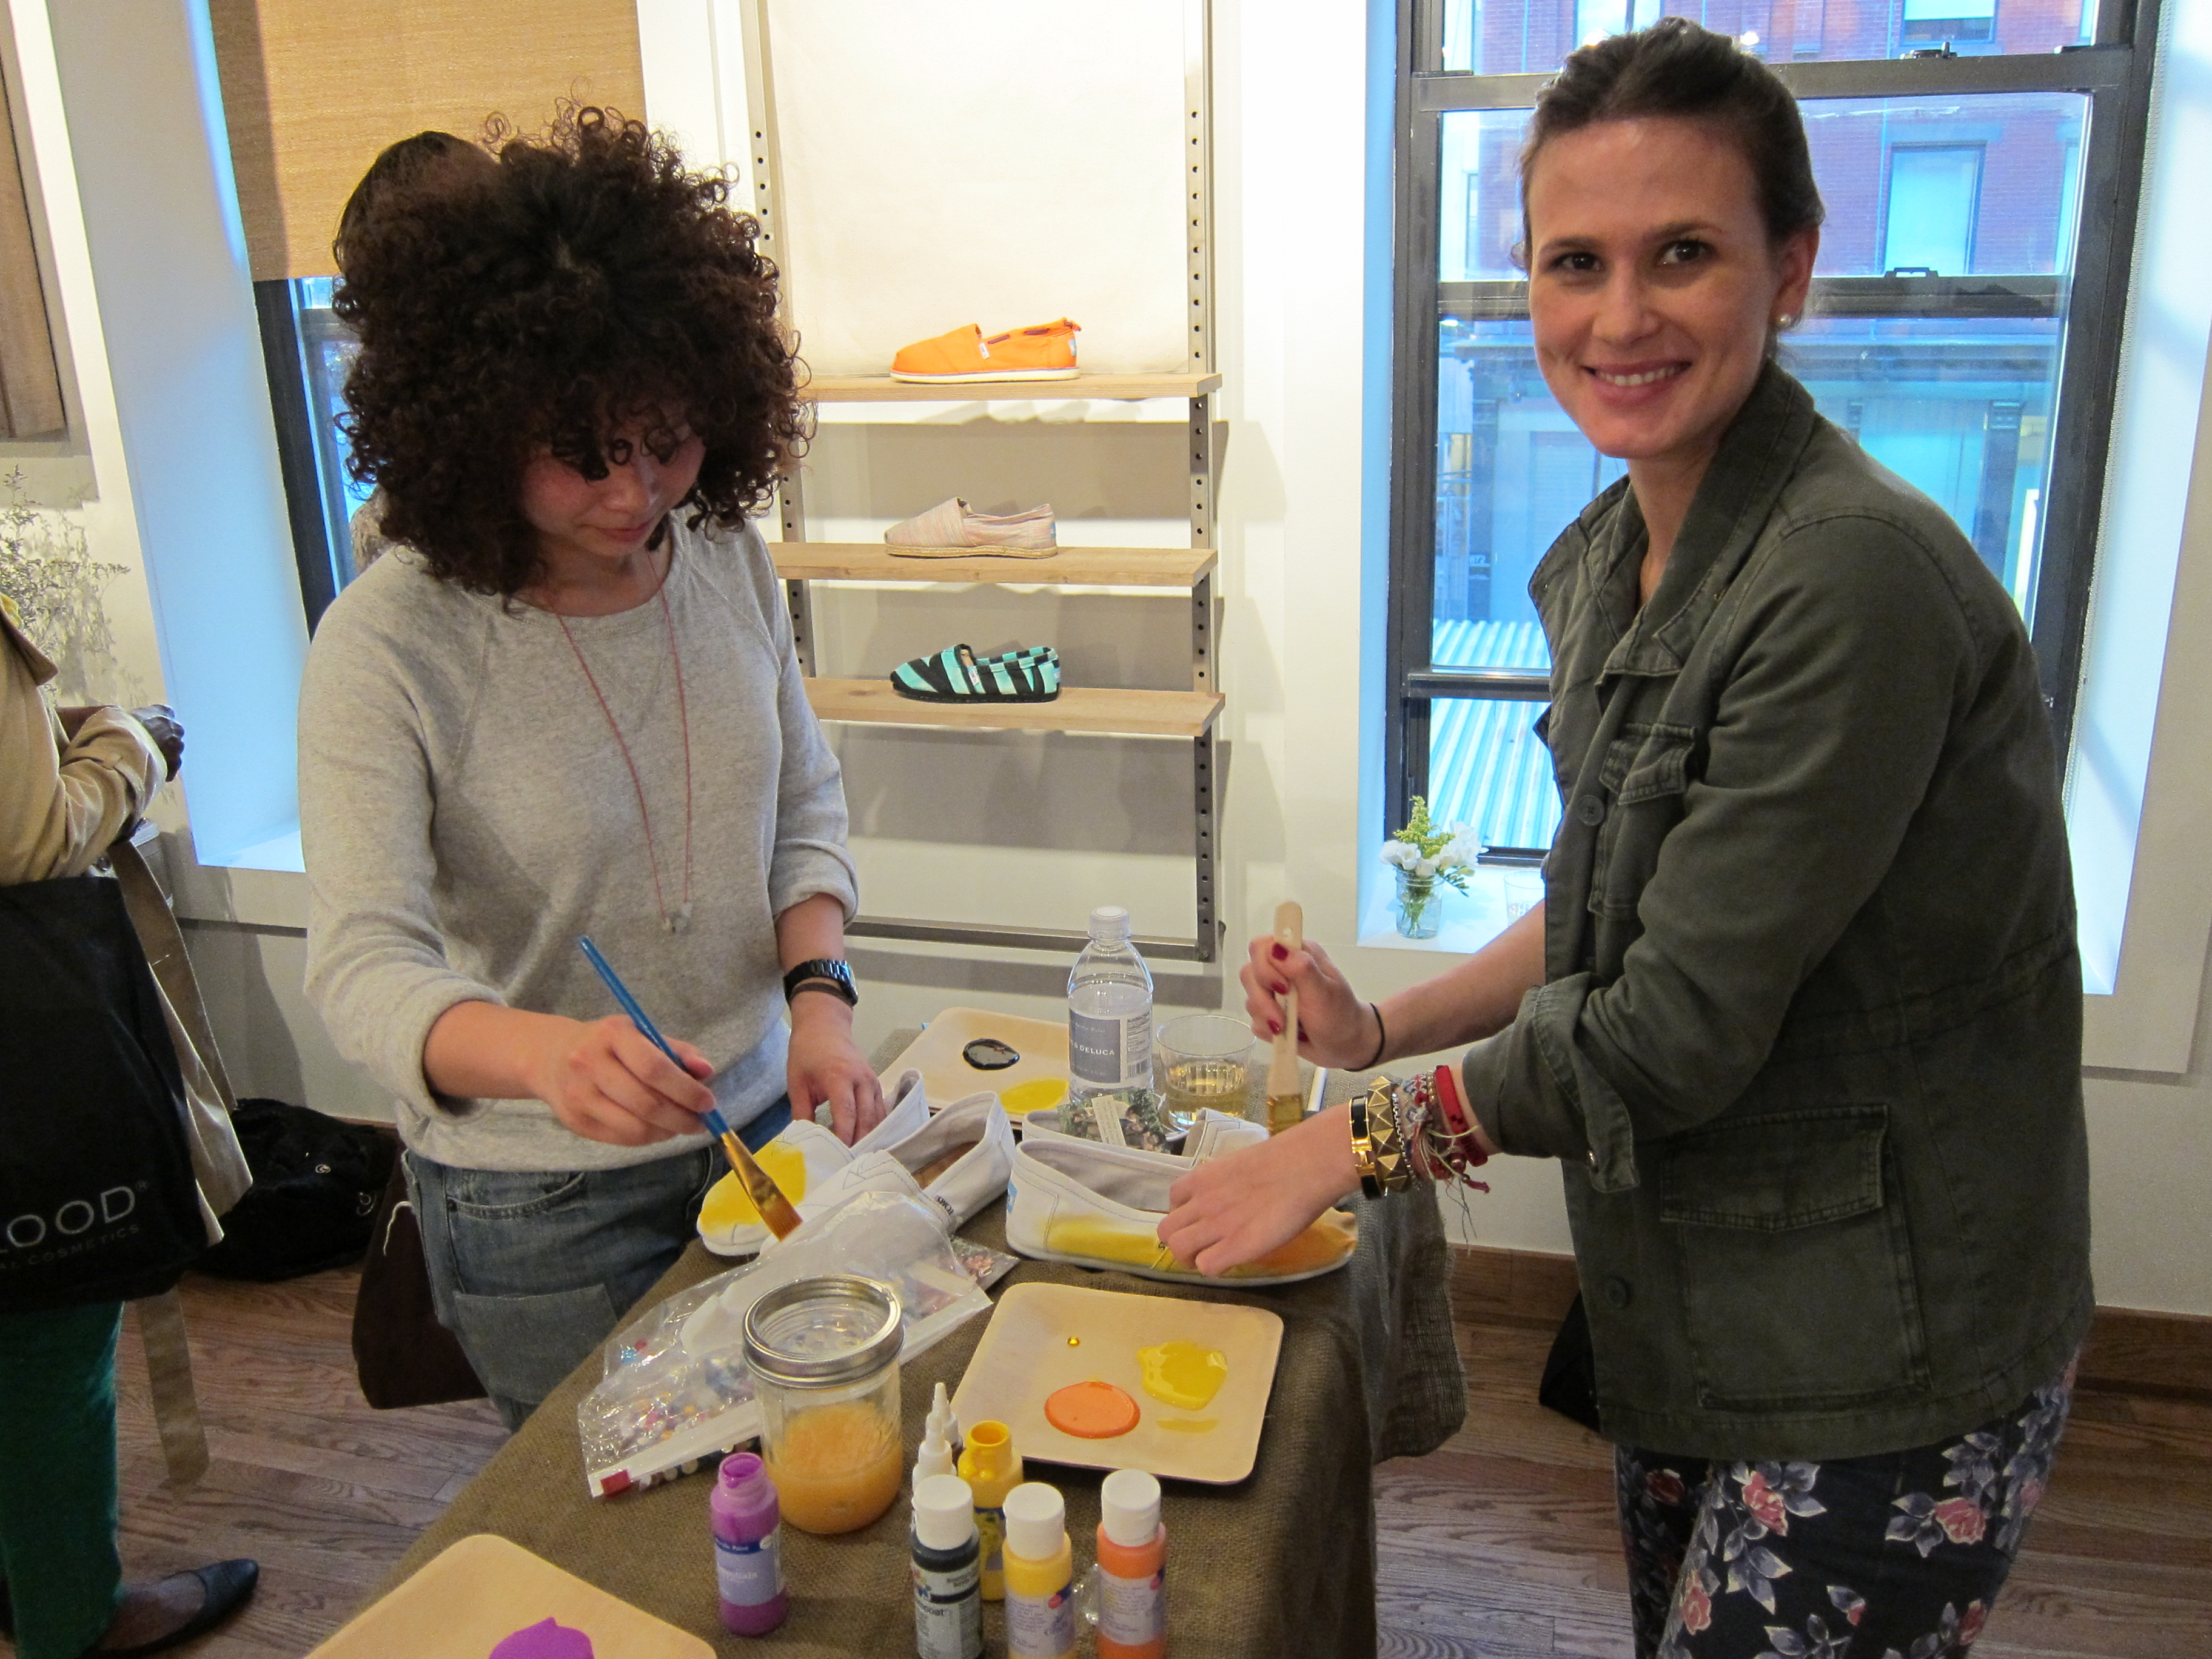 Associate editor Chi Chau and assistant editor Hannah Weil jumped right into painting their TOMS. Chi opted for a yellow base, and Hannah tried out an ombre effect, pairing orange, yellow, and a splash of pink.